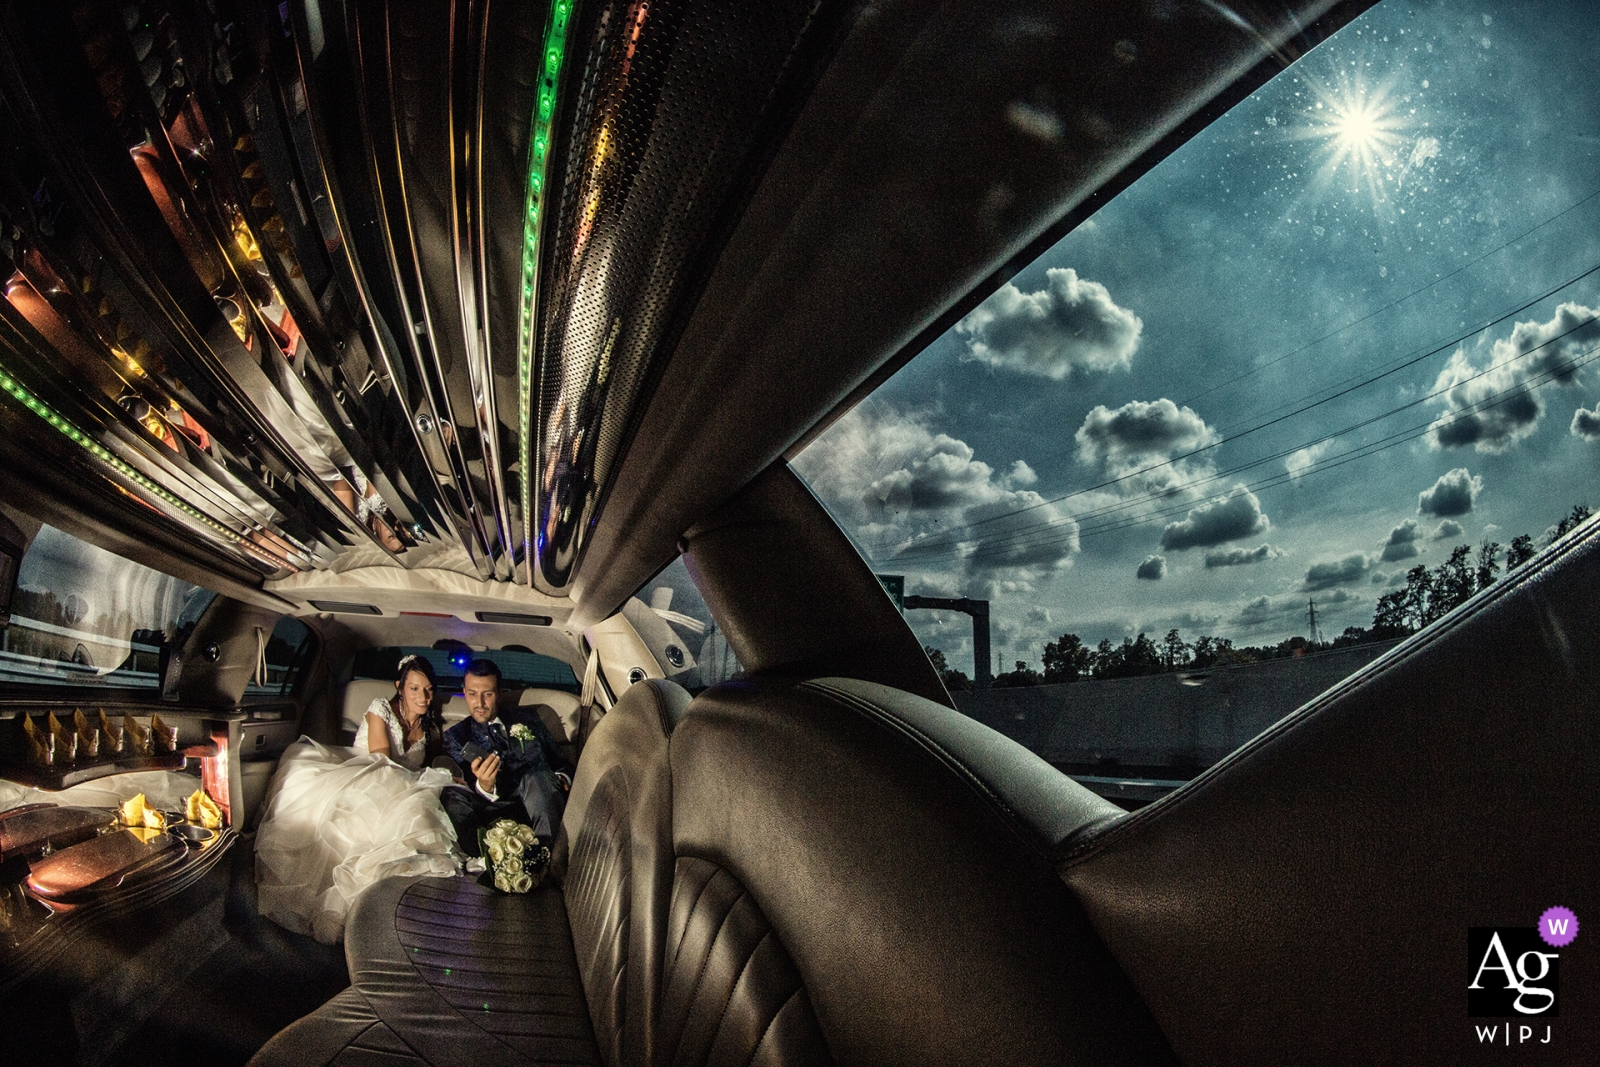 artistic wedding photo during Lombardy portrait session with bride and groom in limo